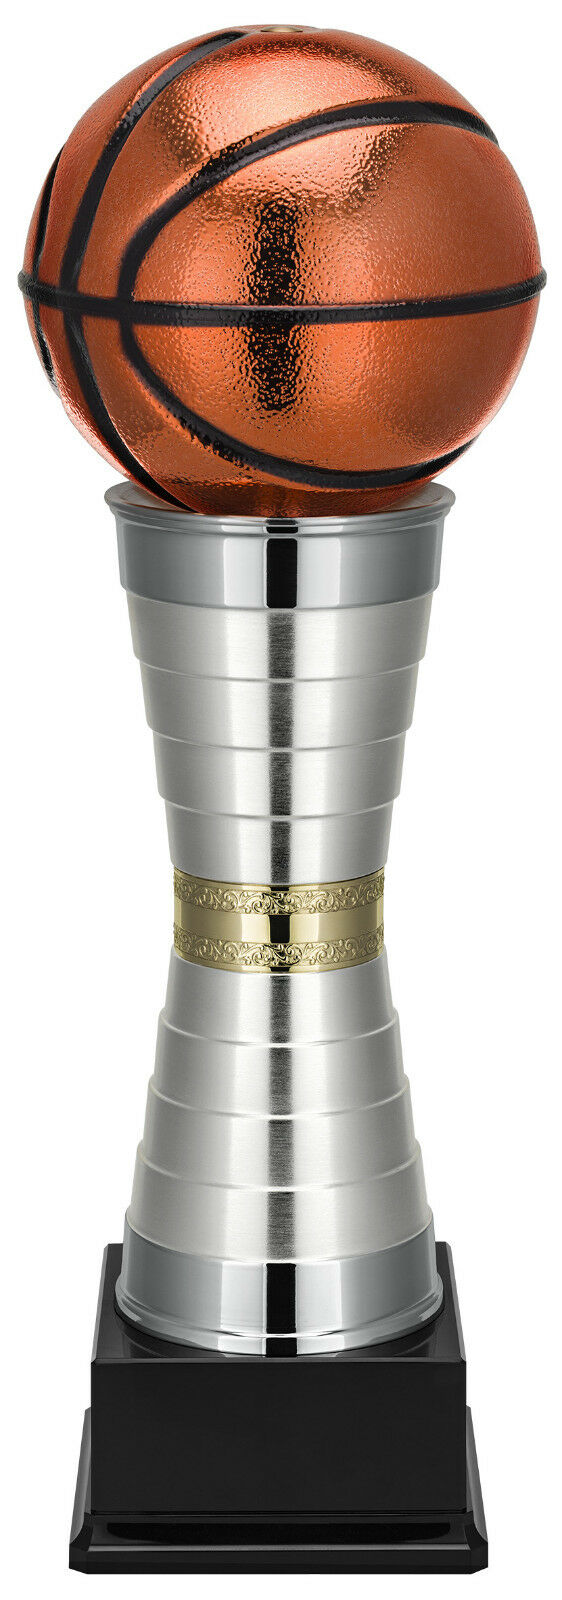 STUNNING GIANT METAL 620mm BASKETBALL TROPHY BEST QUALITY FREE ENGRAVING